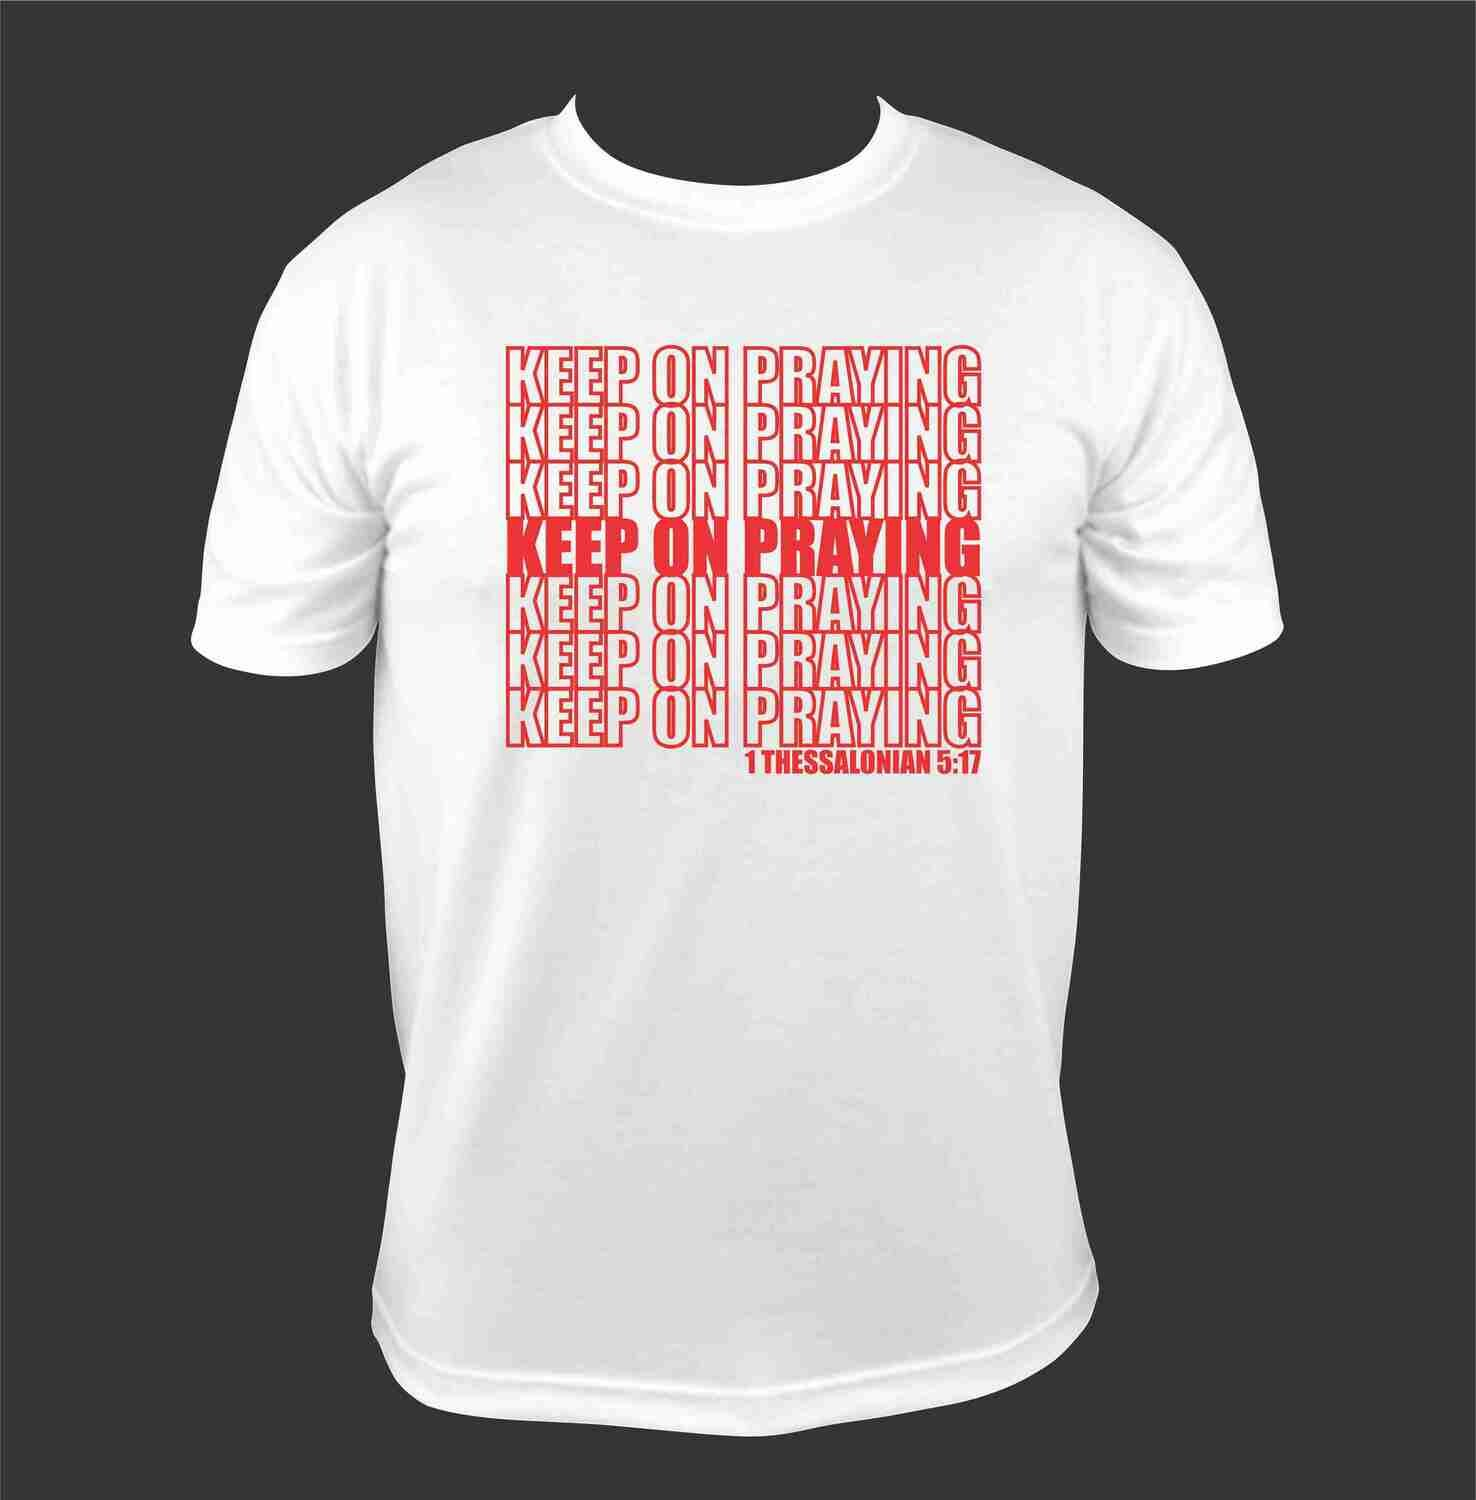 Keep On Praying T-Shirt